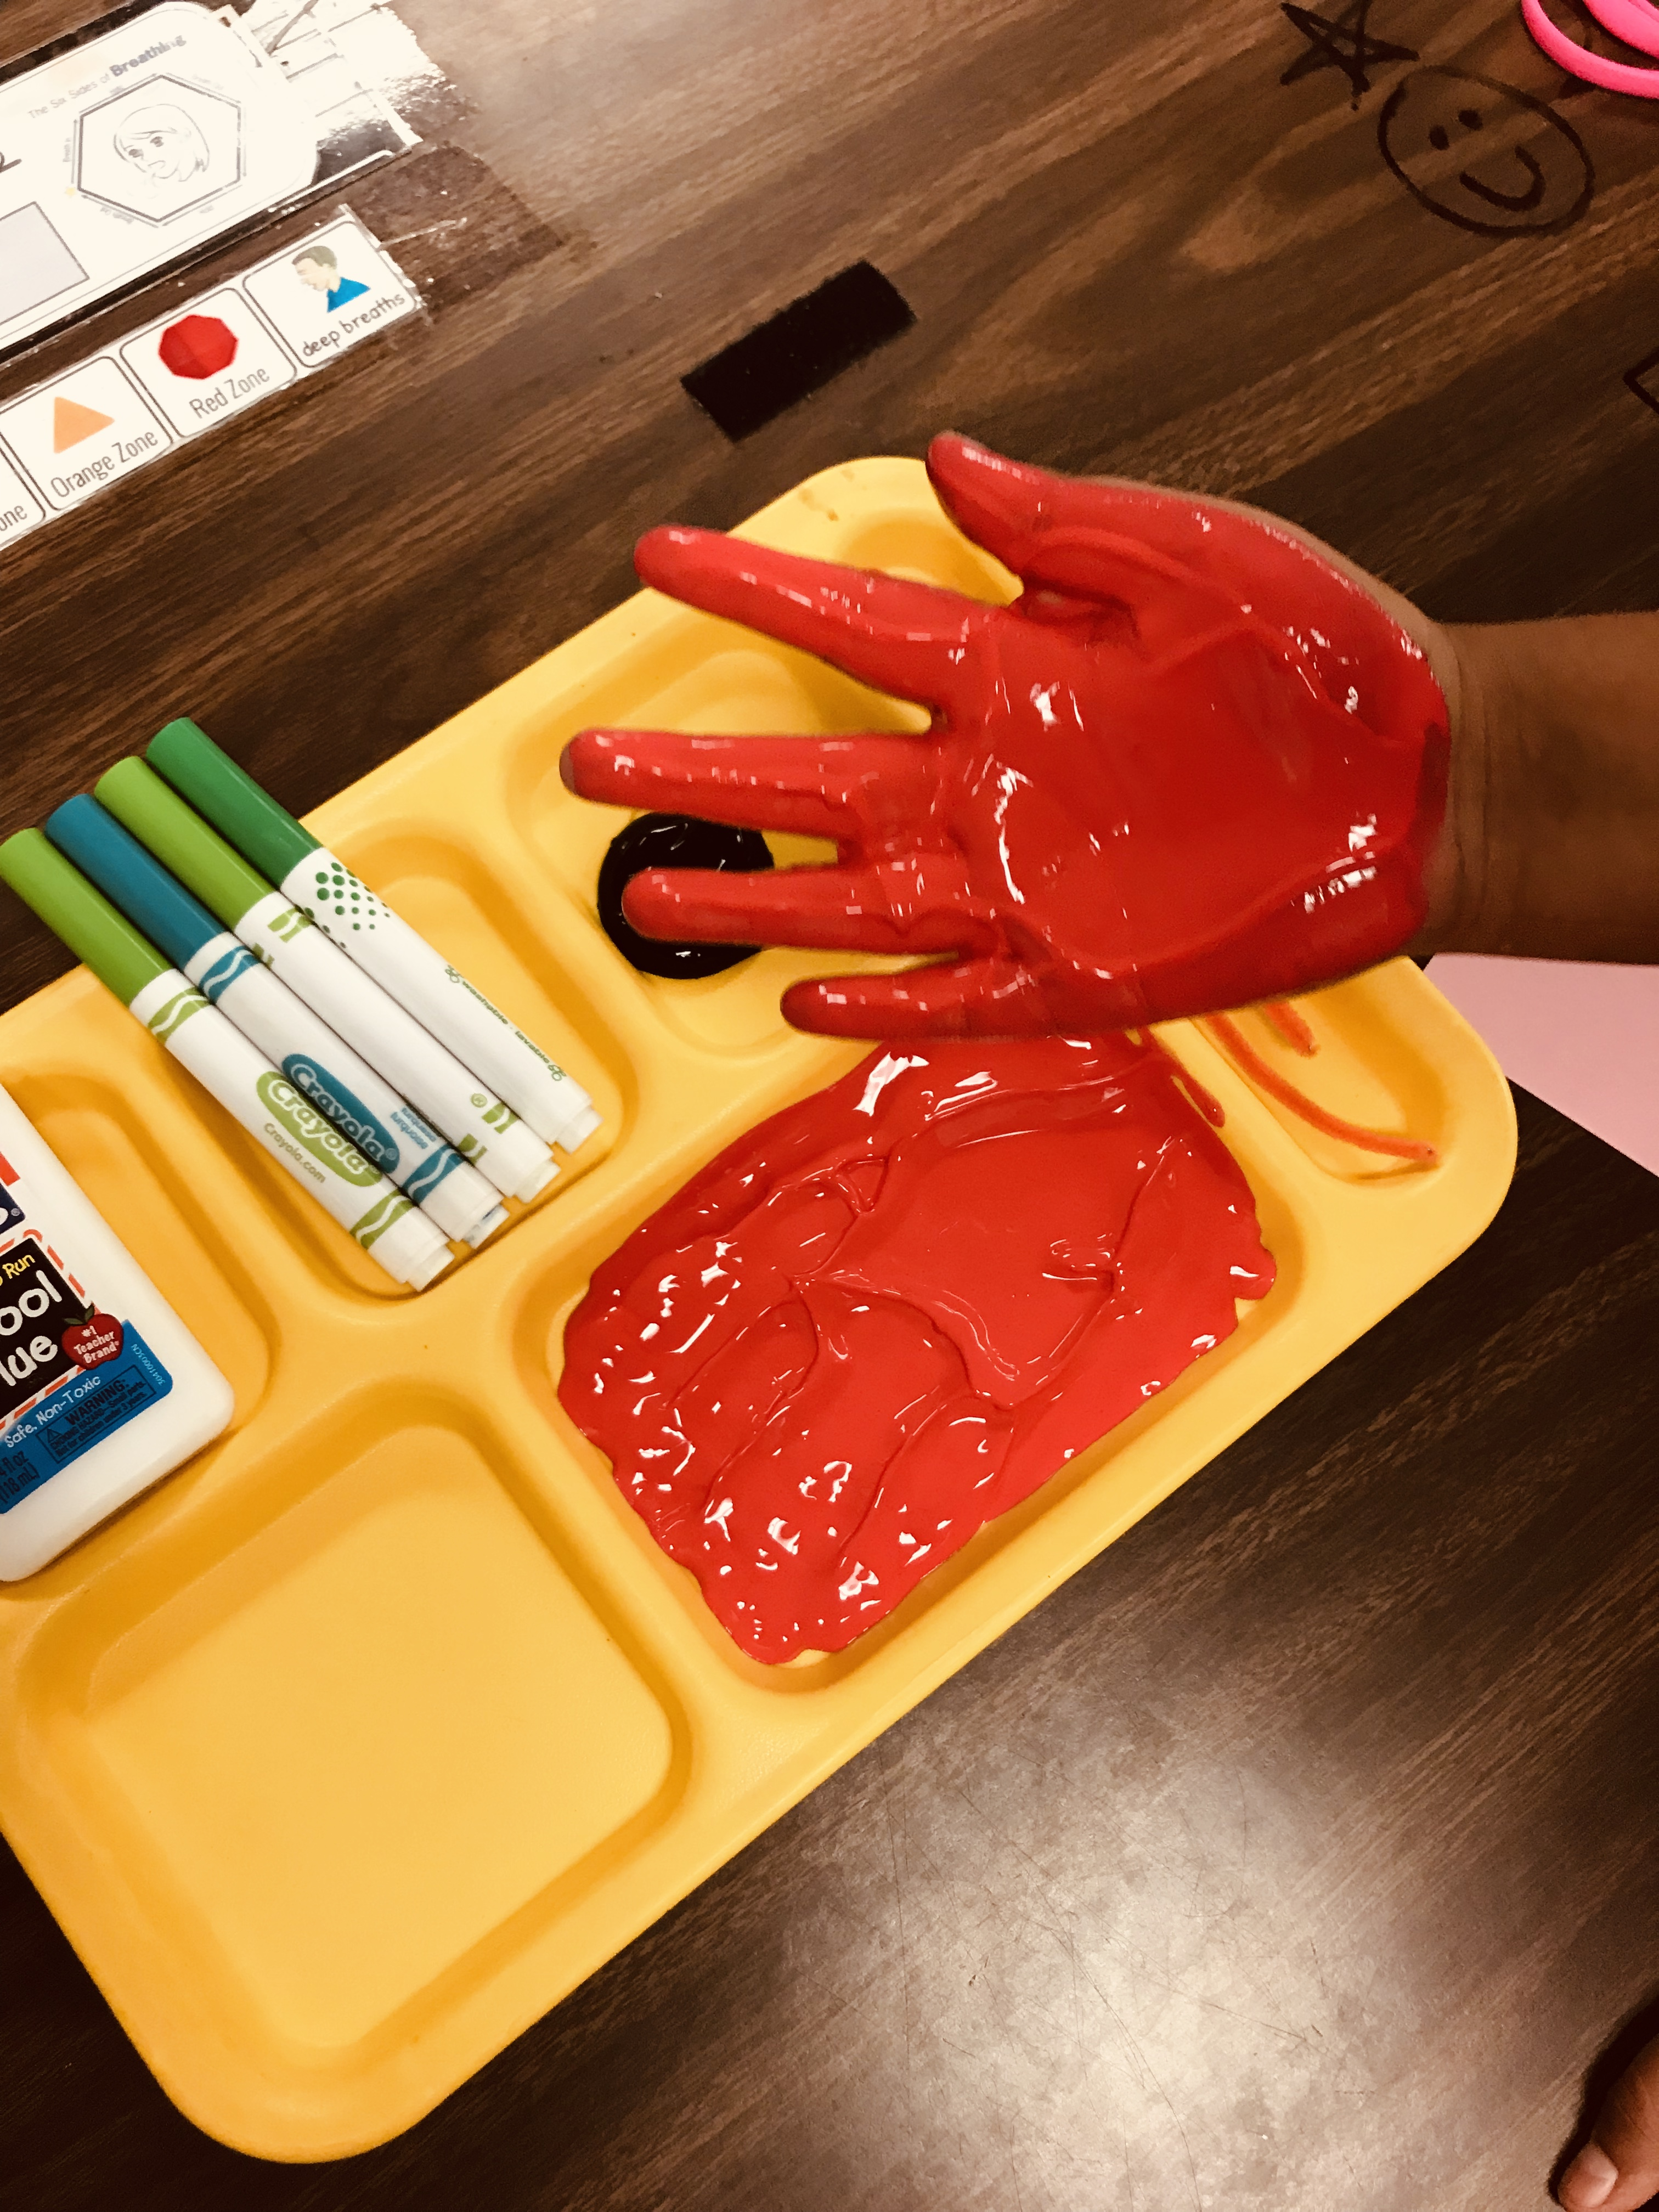 Dipping hand into red paint